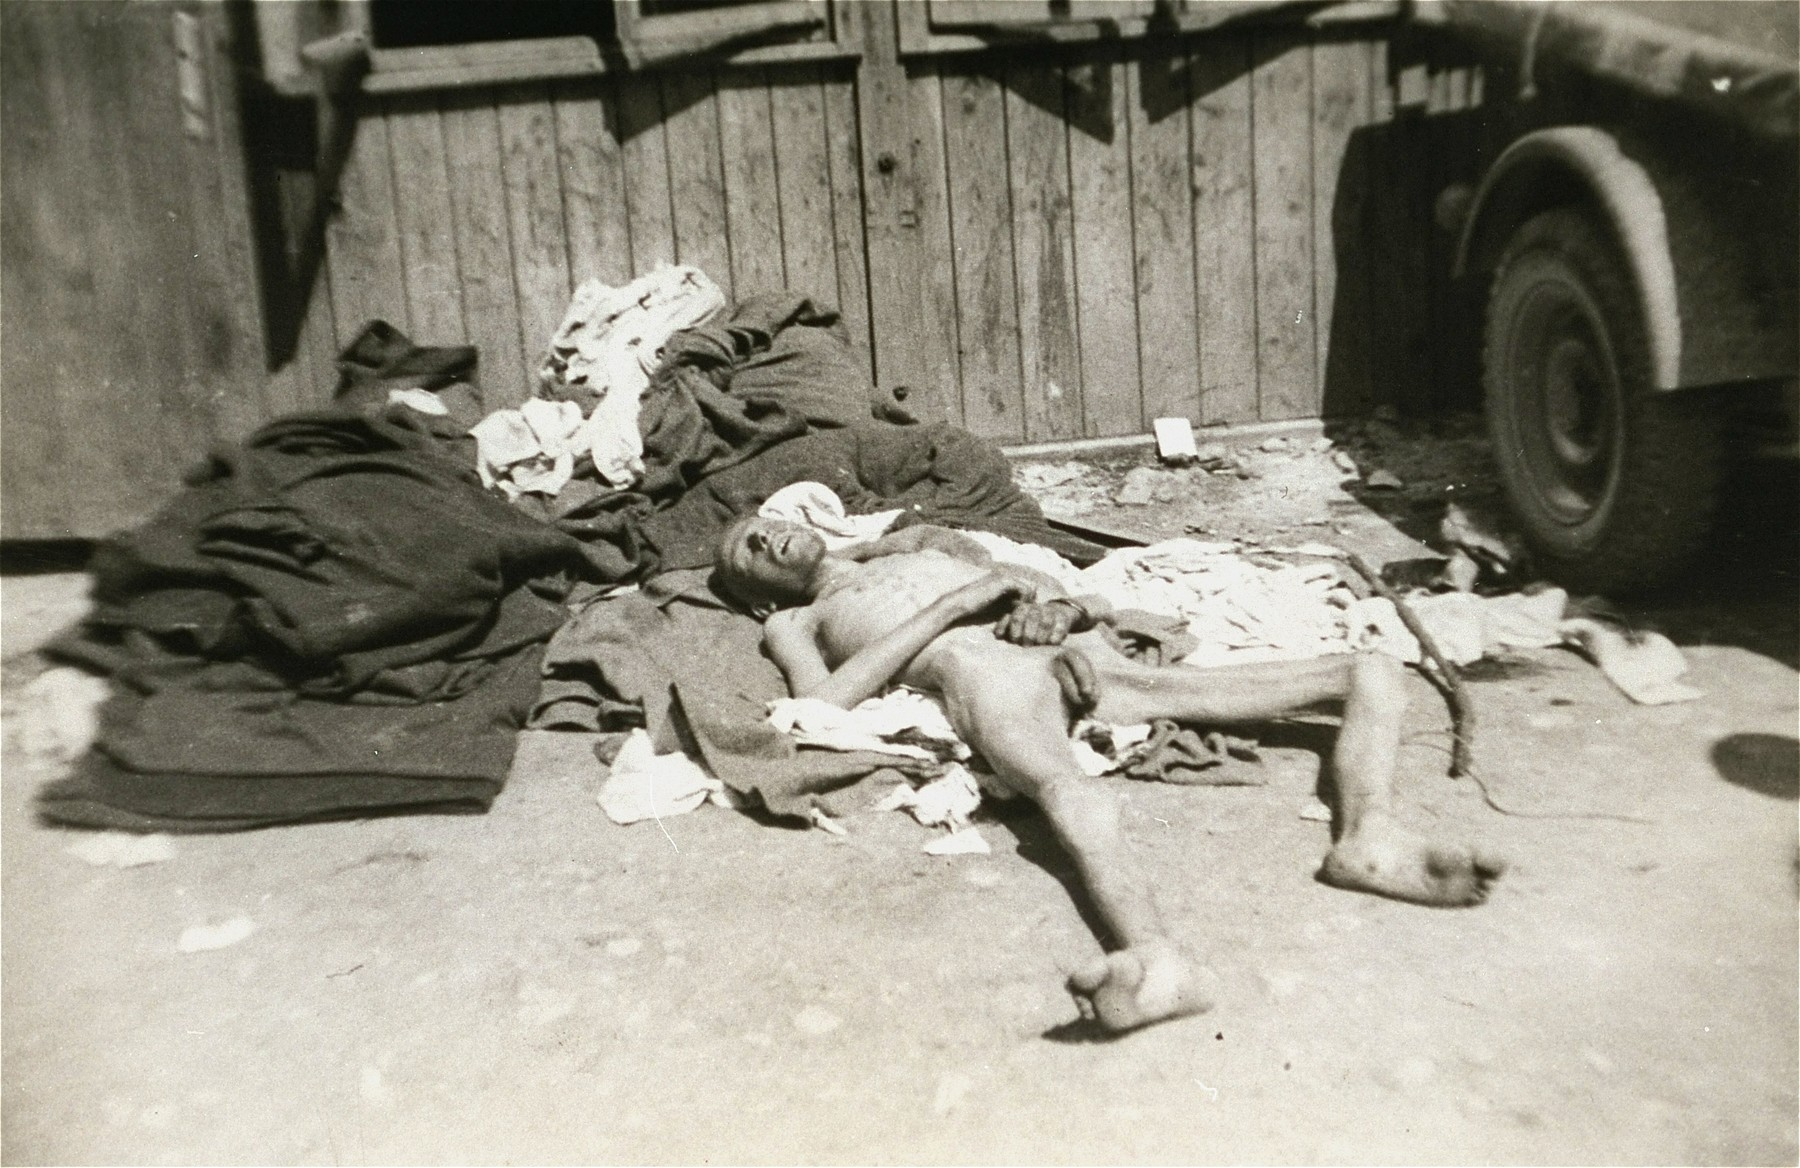 A former prisoner lies outside a barracks in the newly liberated Ebensee concentration camp.  It is not clear if he is alive or dead.